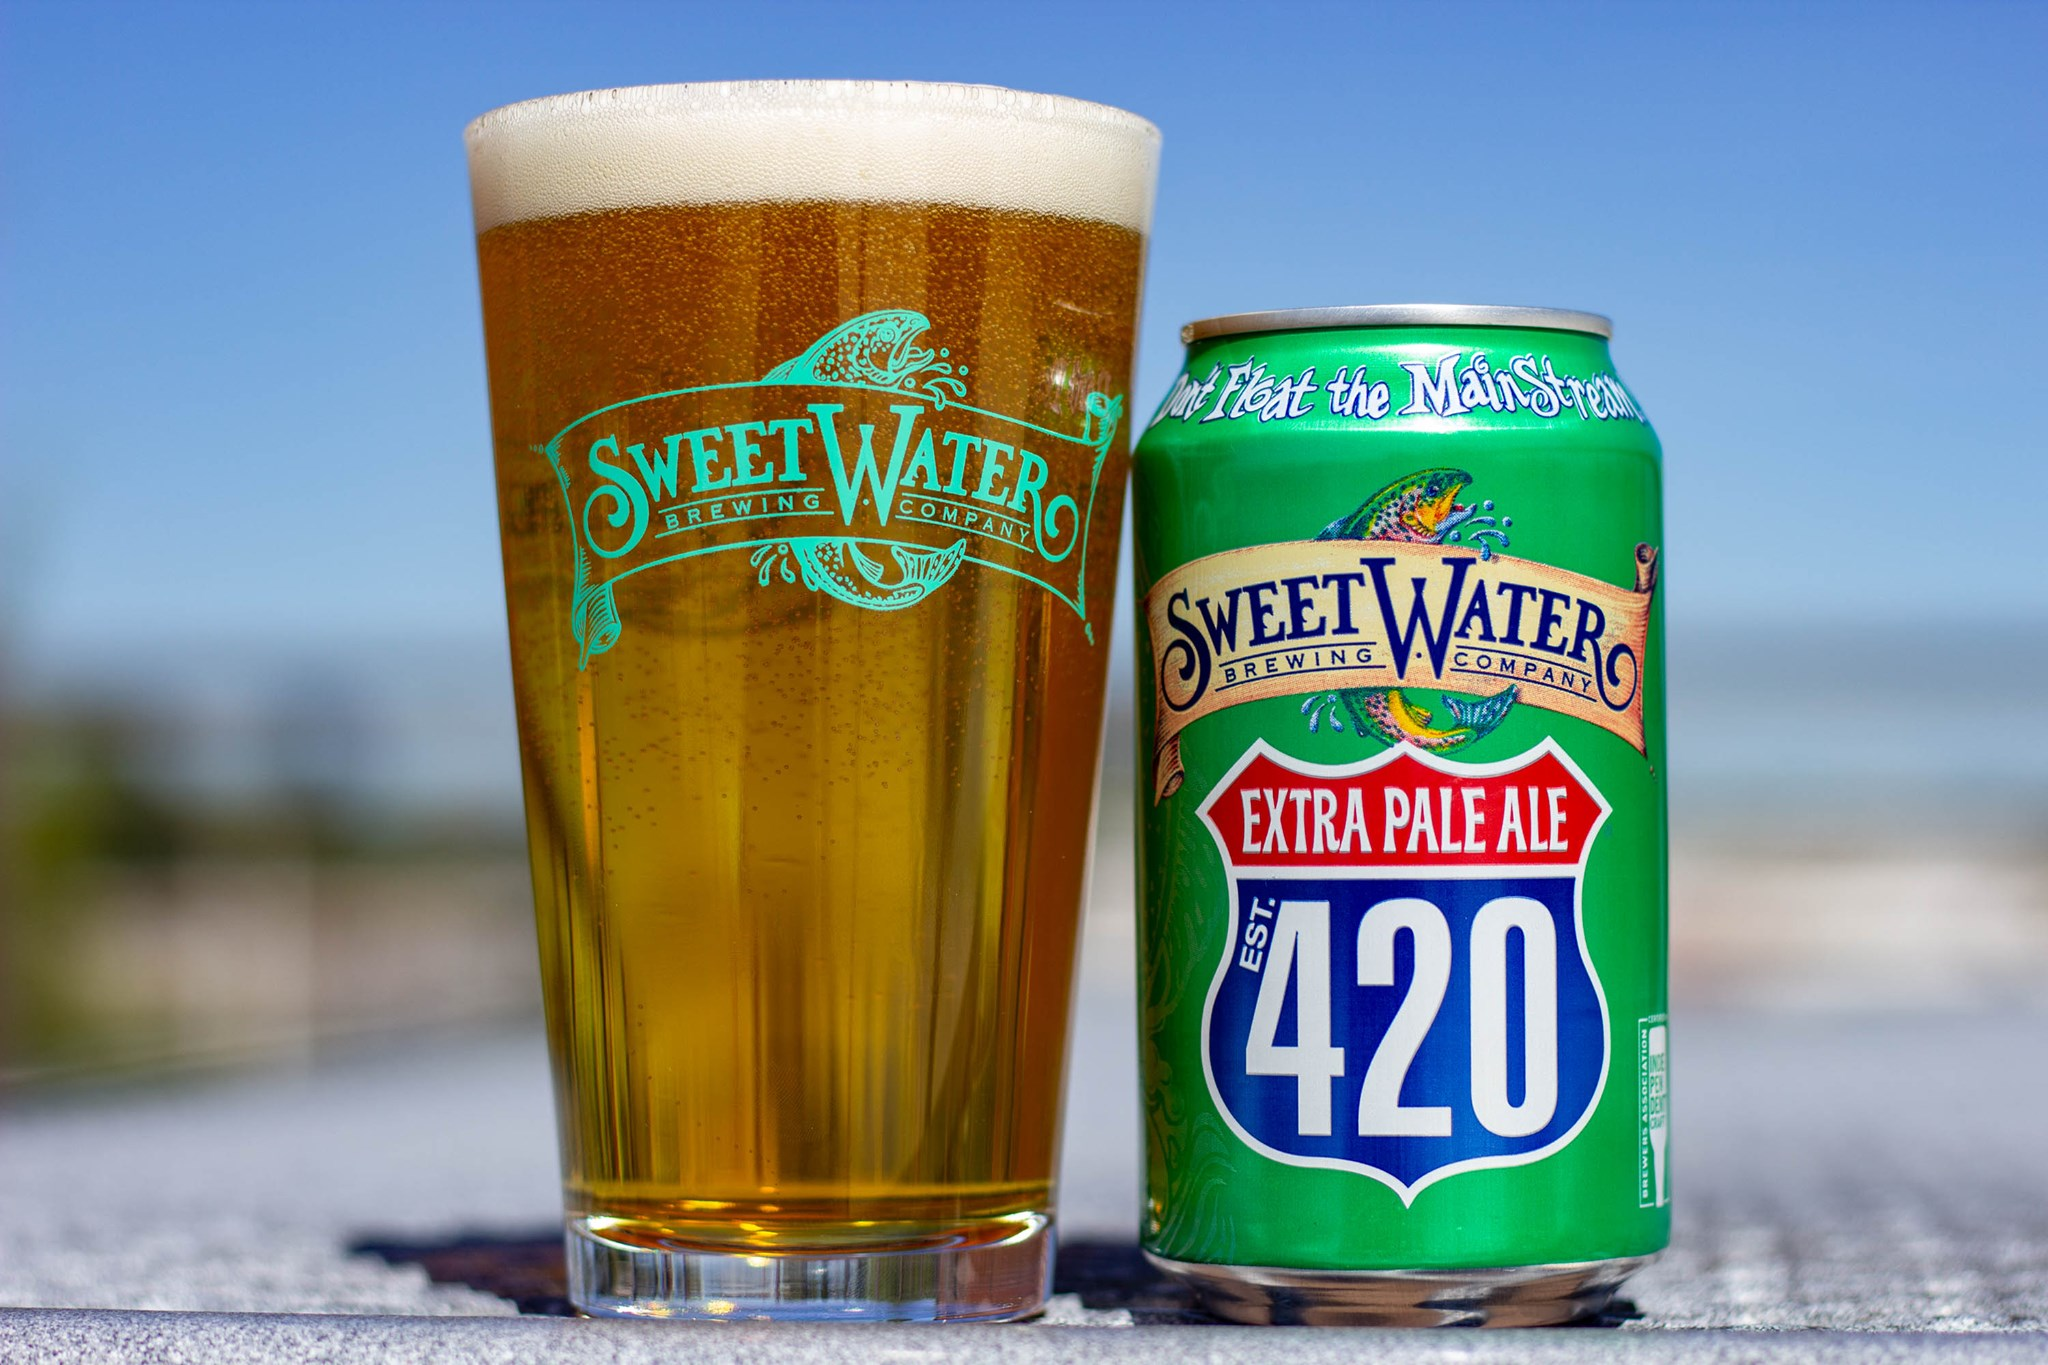 A pint of SweetWater Brewing Company's 420 Extra Pale Ale beside a green can with Extra Pale Ale 420 within a red and blue interstate highway logo